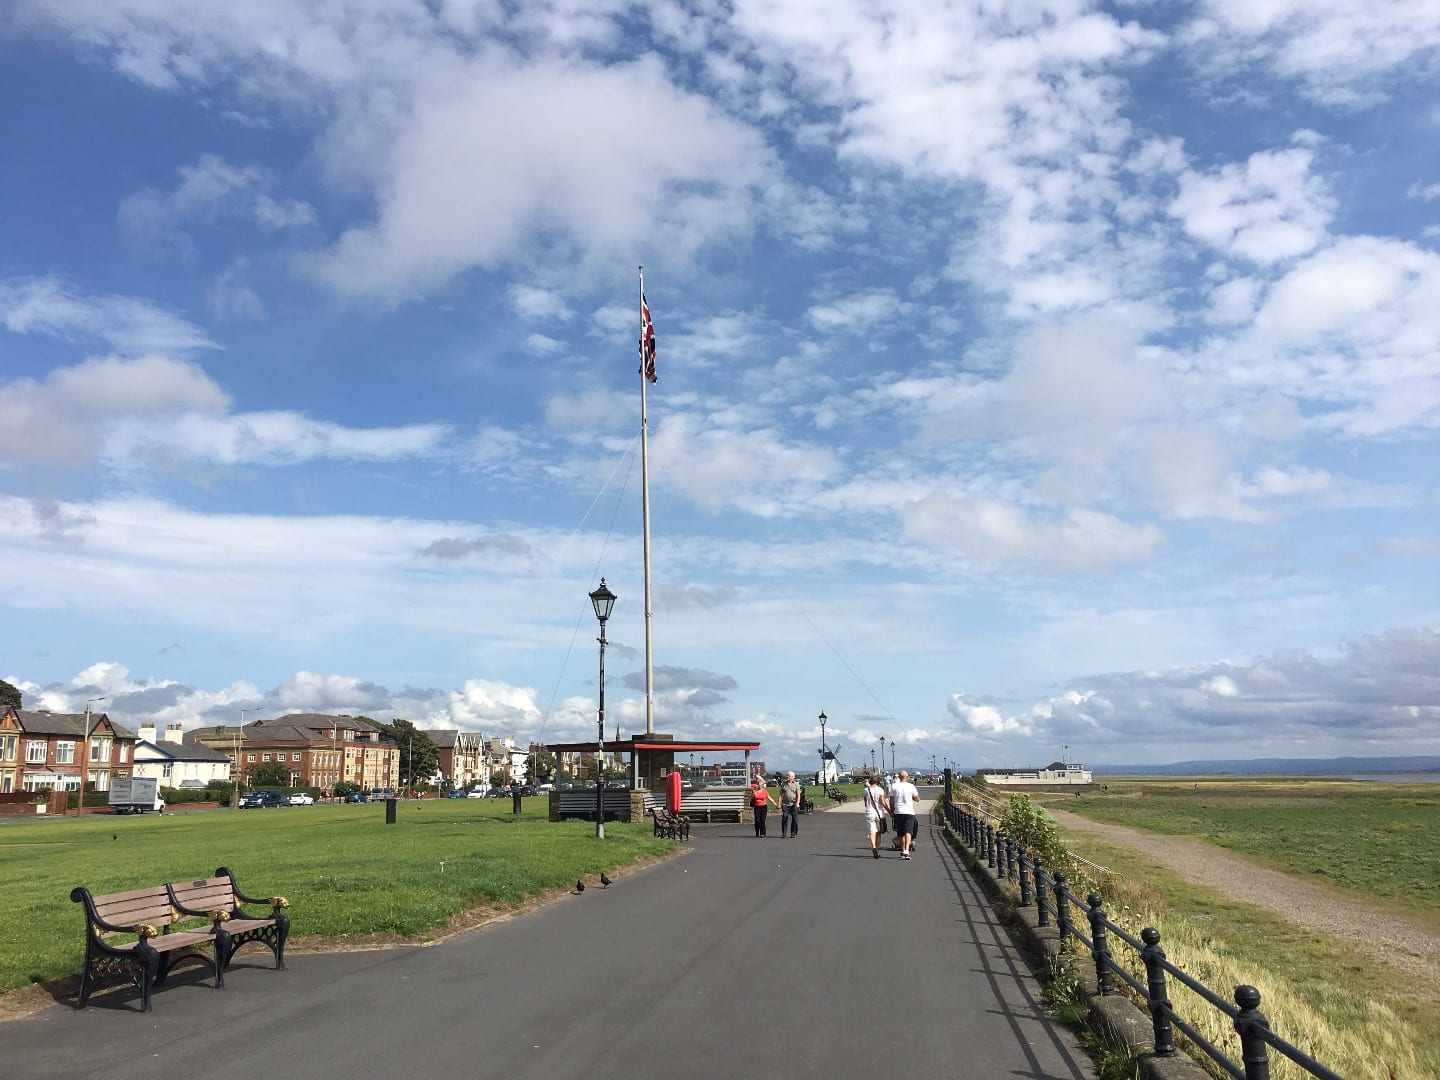 Lytham seafront, looking towards the River Ribble with the Windmill in the distance